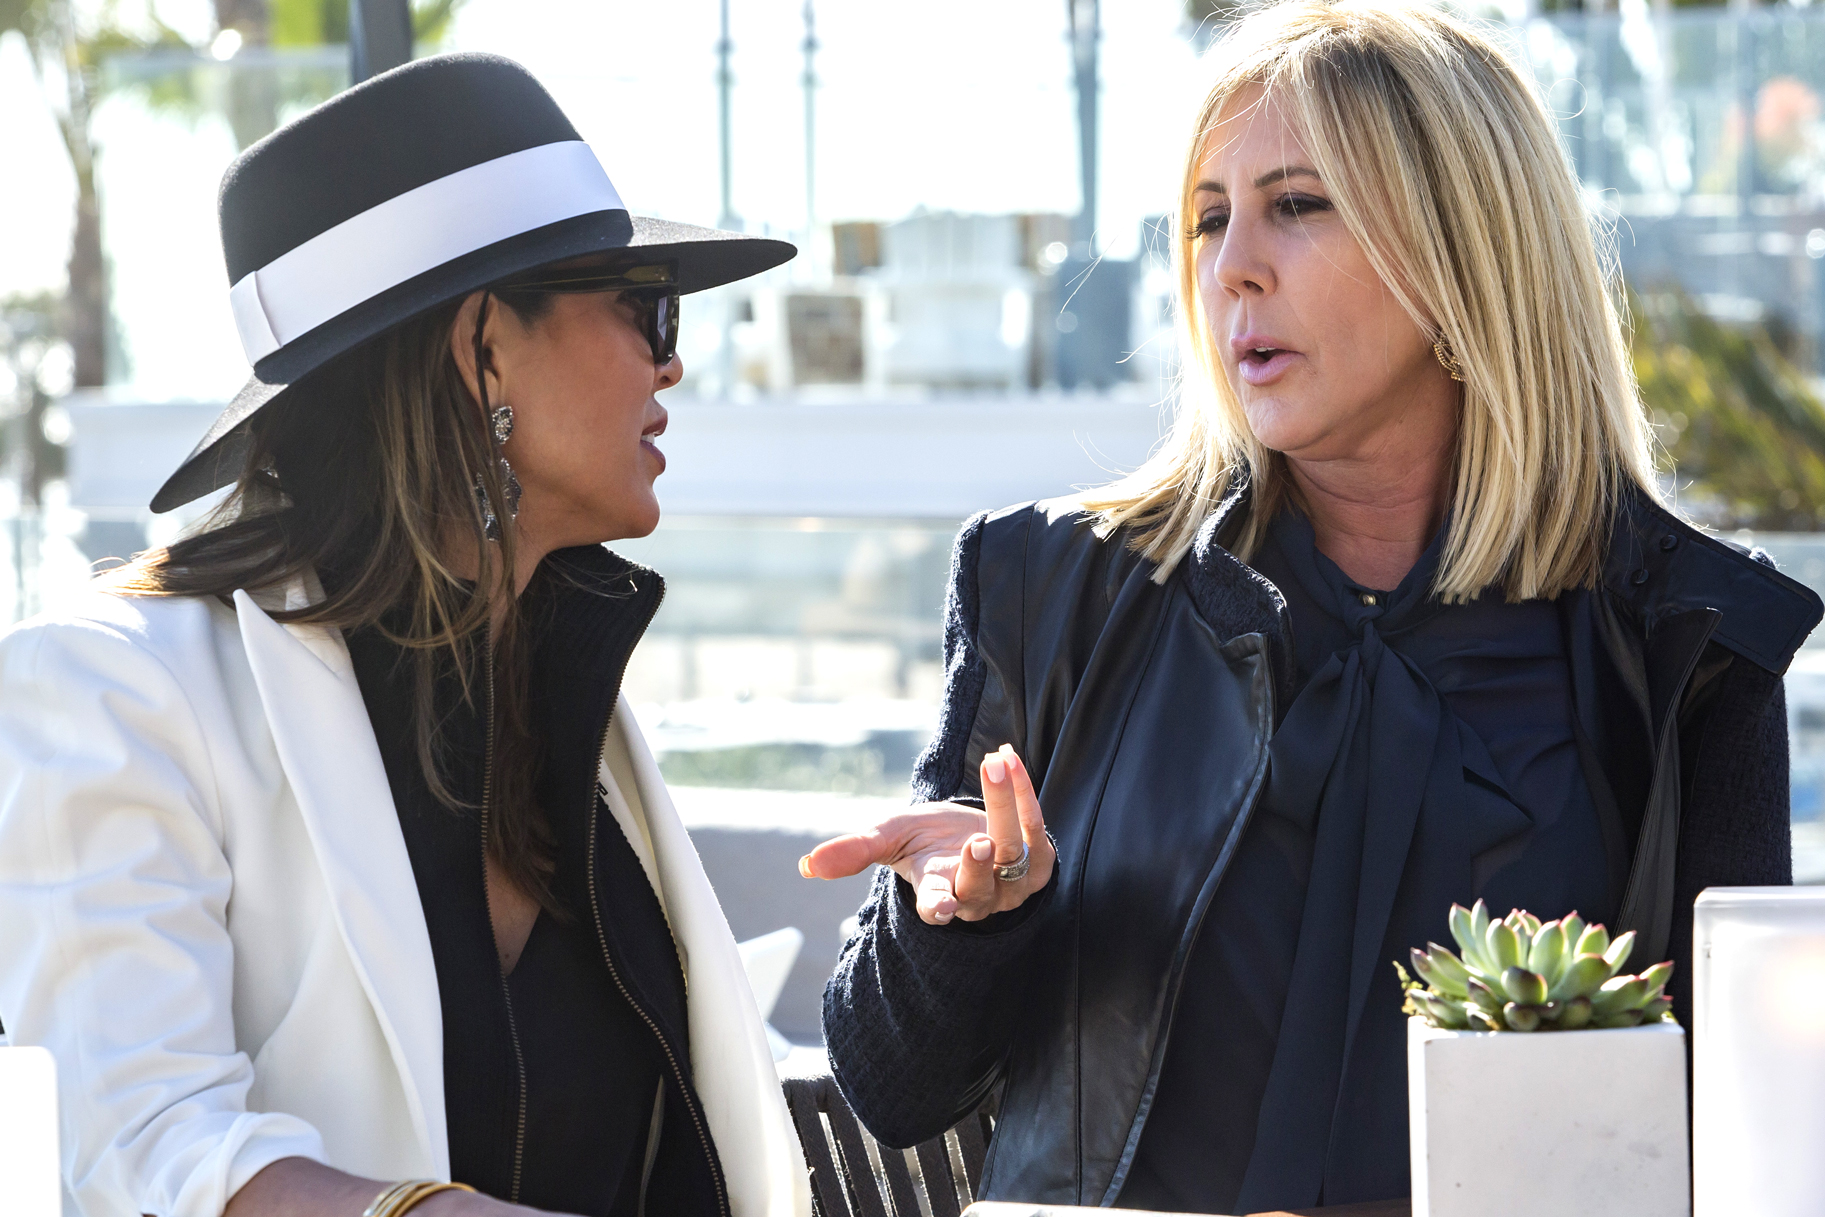 Kelly Dodd and Vicki Gunvalson on The Real Housewives of Orange County